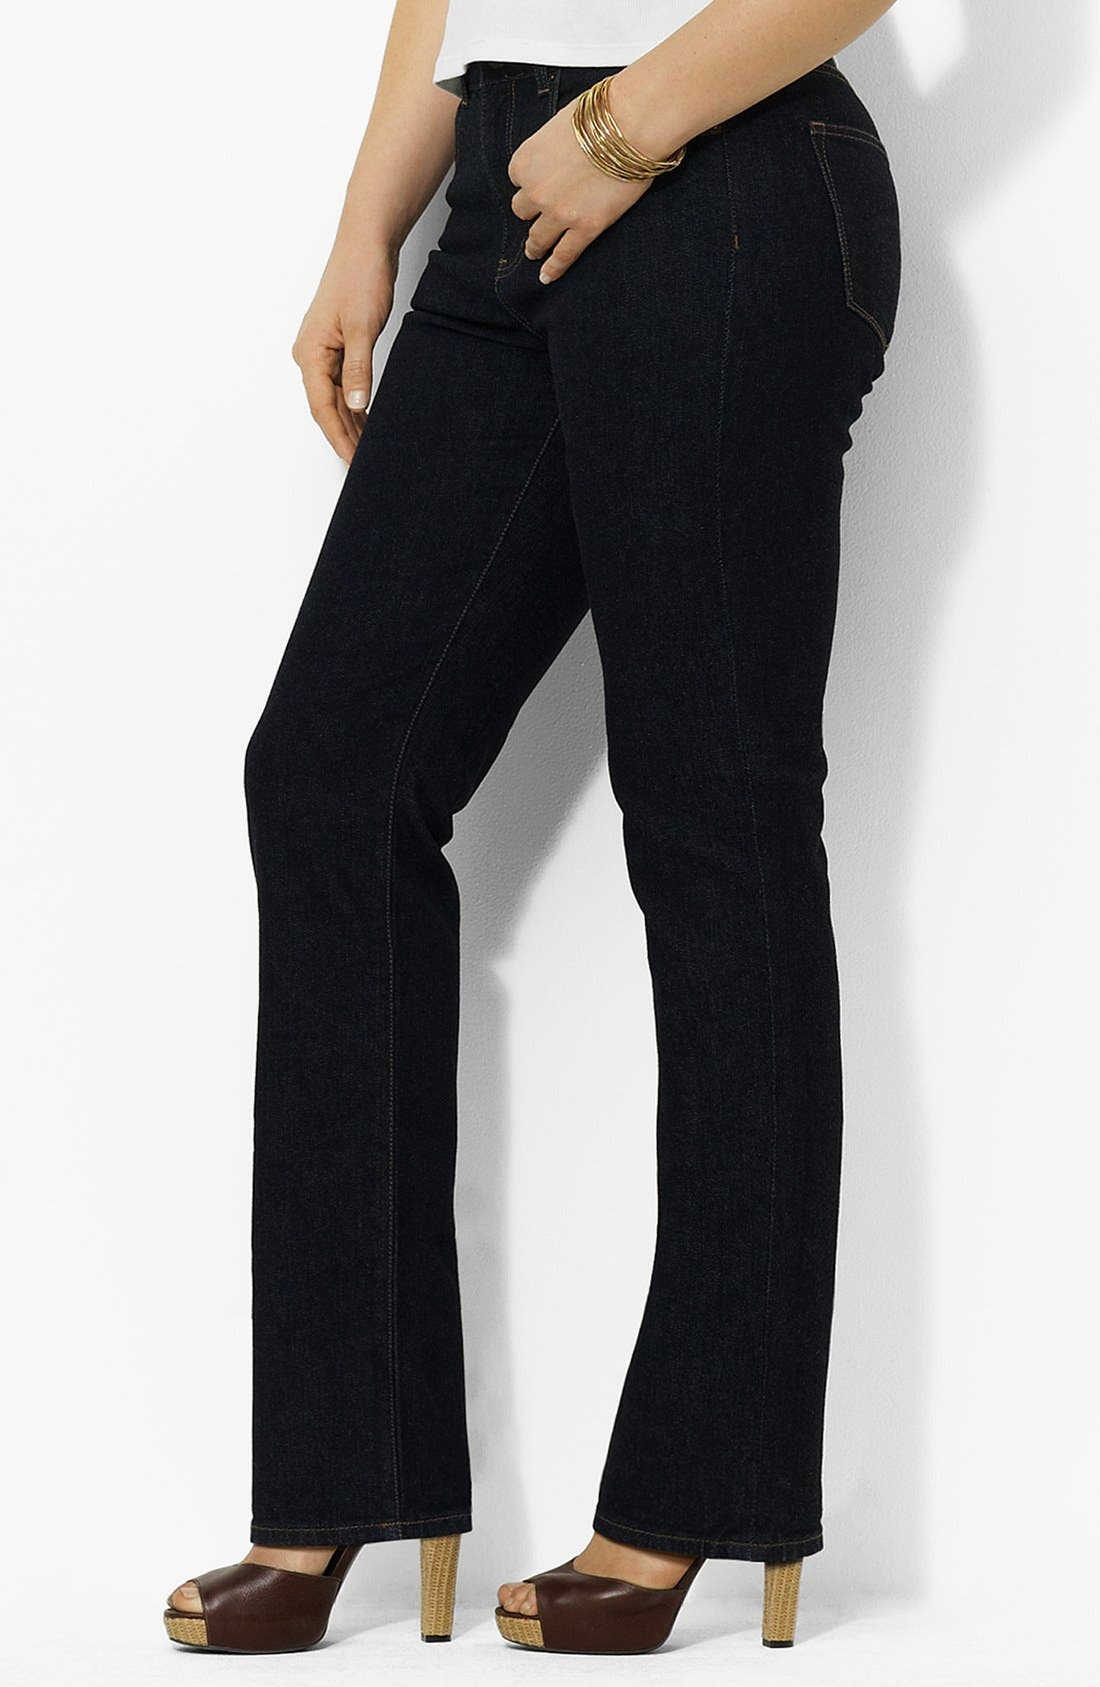 Alternate Image 1 Selected - Lauren Ralph Lauren Straight Leg Jeans (Plus Size)